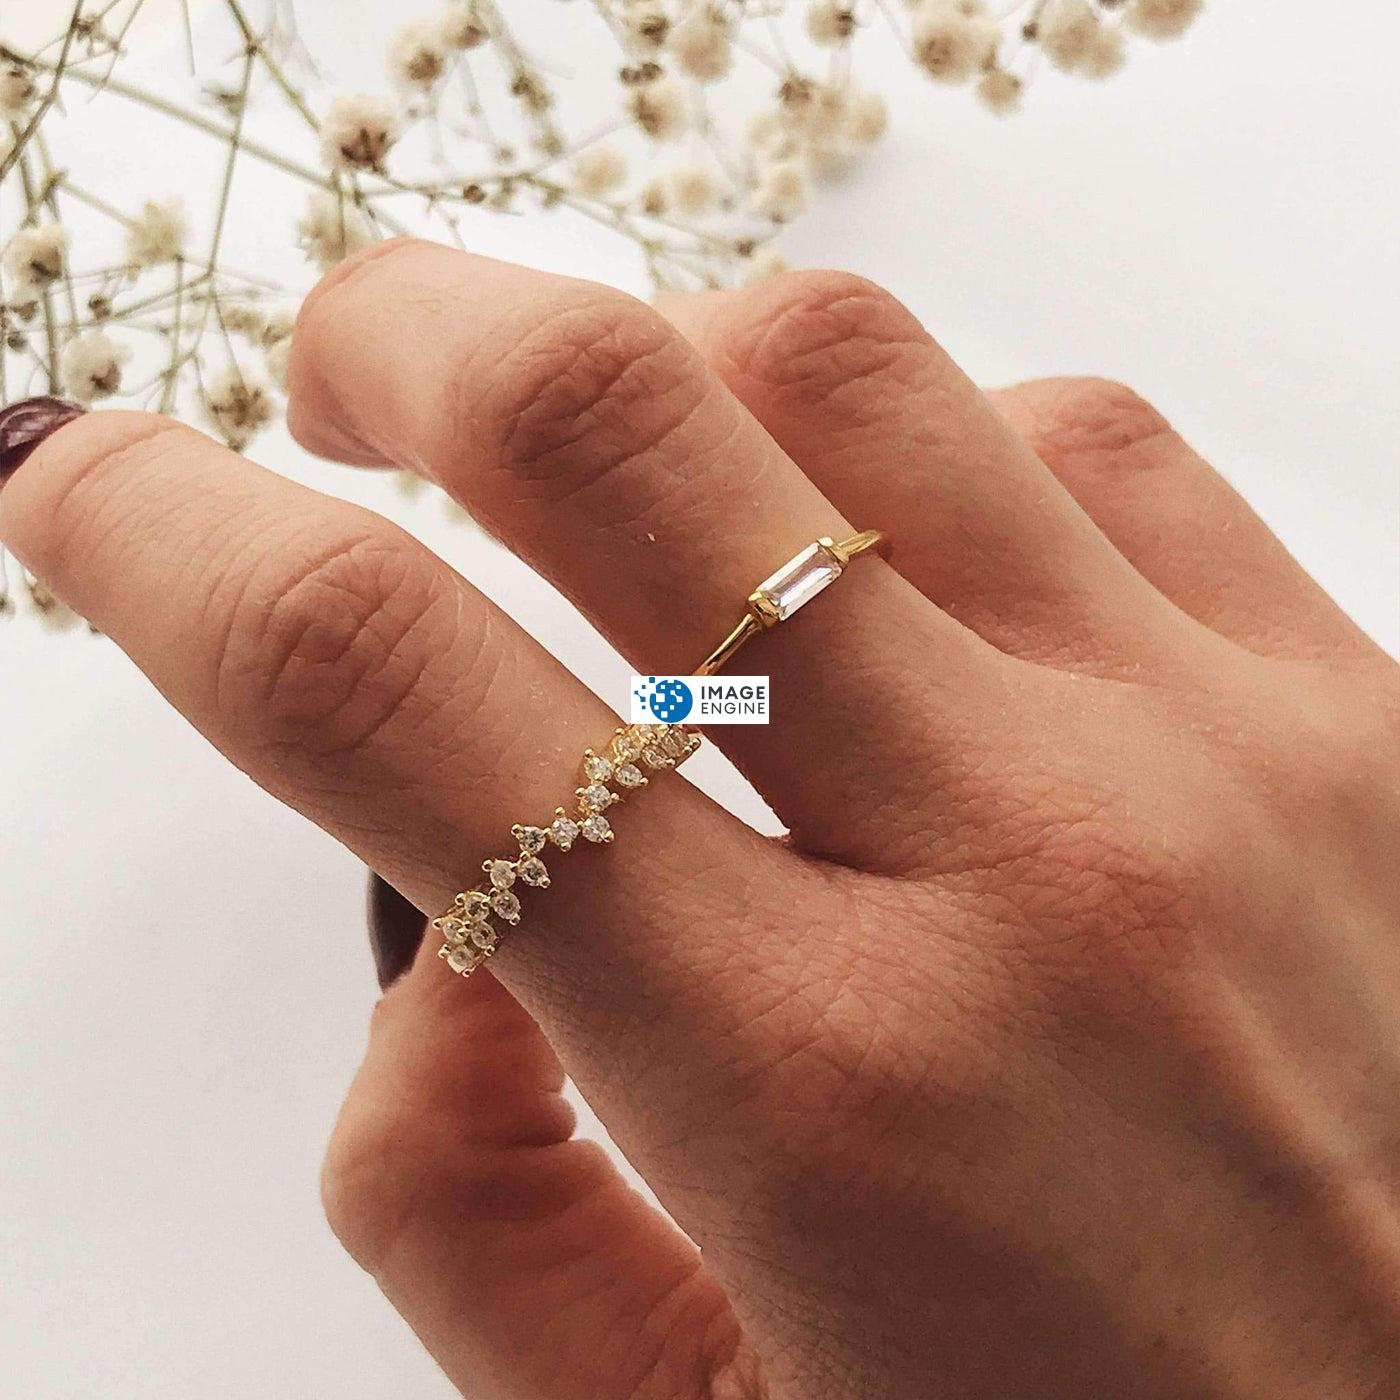 Esther Petite Cluster Ring - Wearing on Pointer Finger w Another Ring - 18K Yellow Gold Vermeil